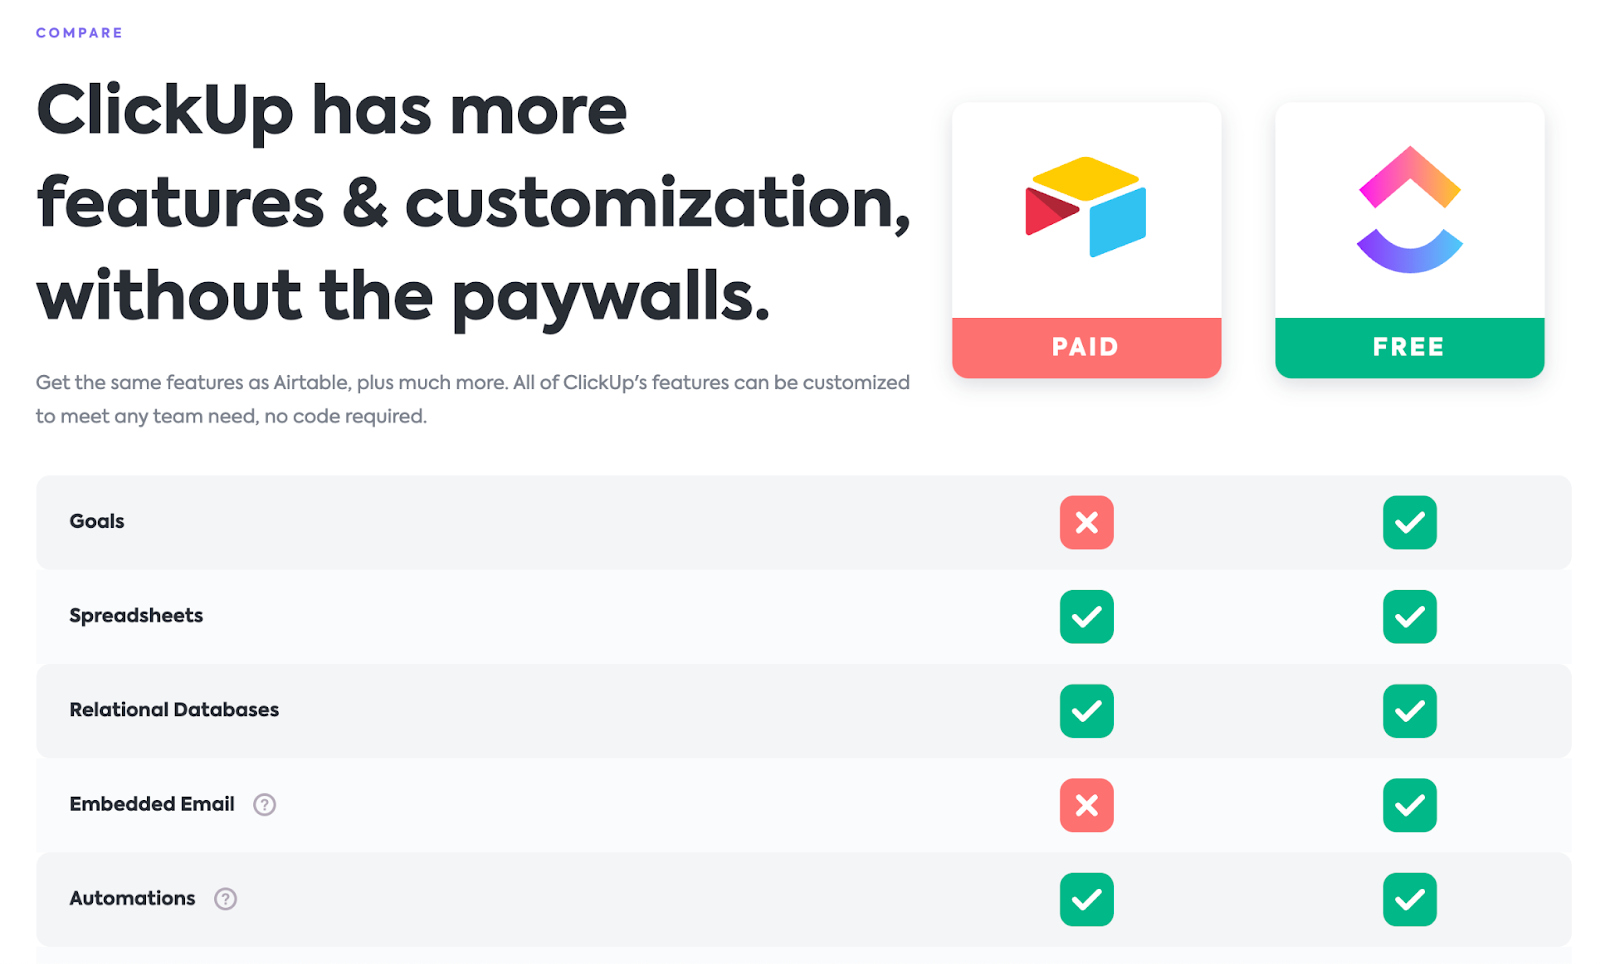 Clickup's landing page with their product comparison table.